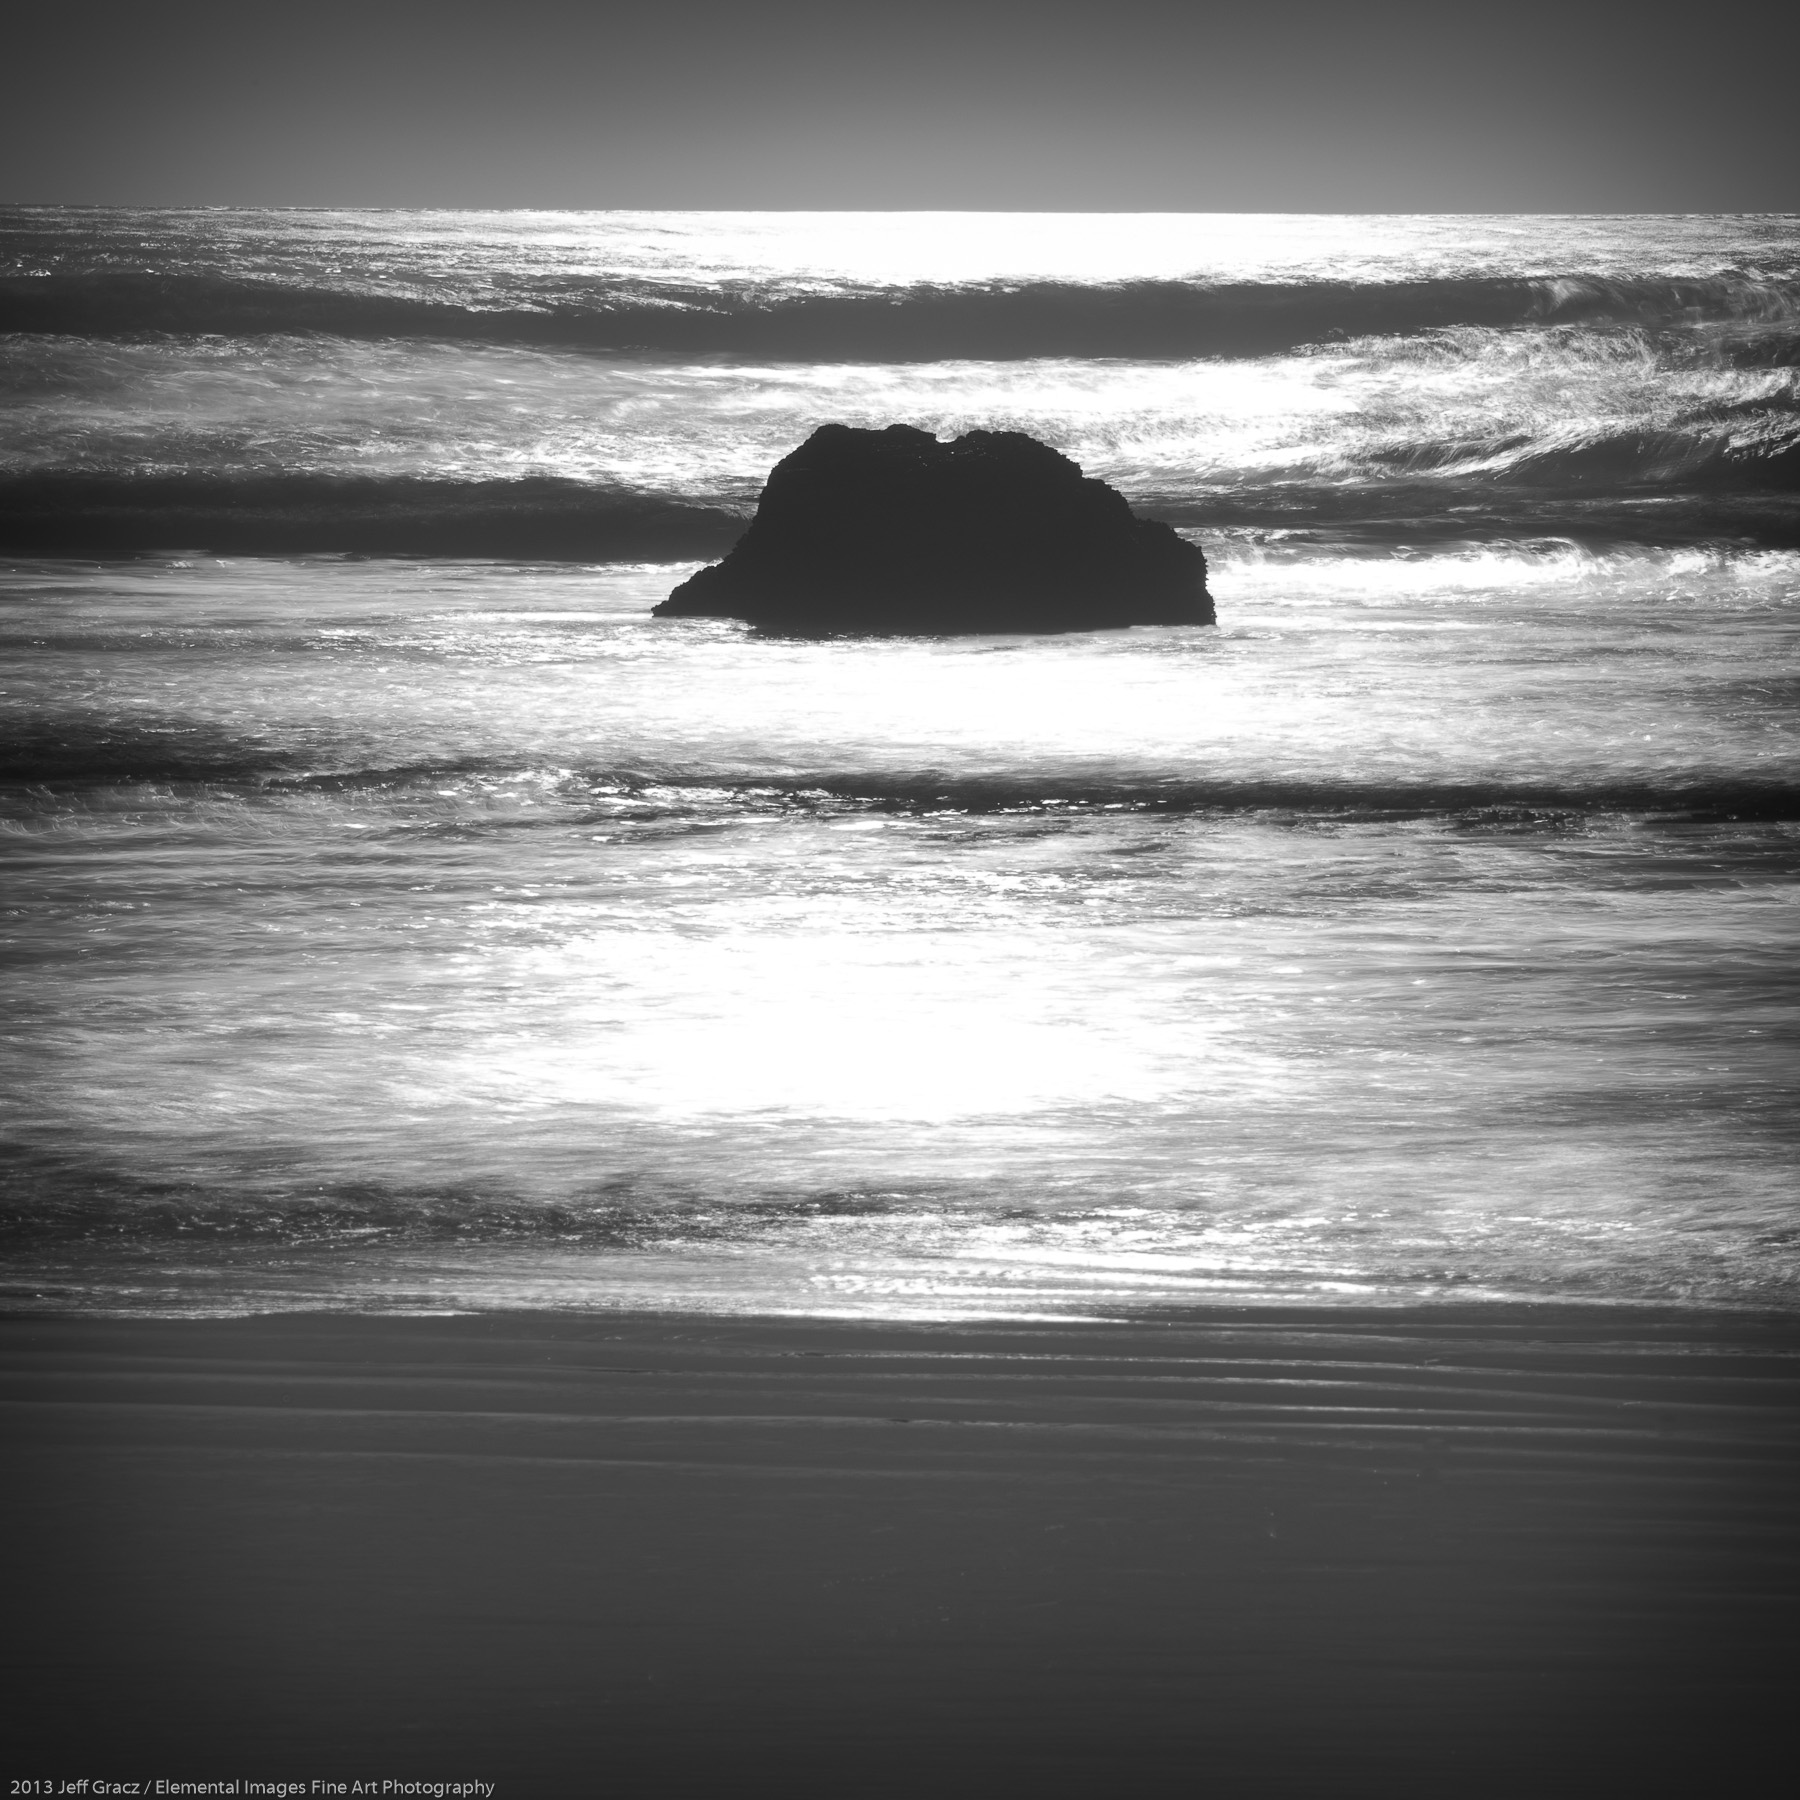 Zen Rocks VI | Cannon Beach | OR | USA - © 2013 Jeff Gracz / Elemental Images Fine Art Photography - All Rights Reserved Worldwide